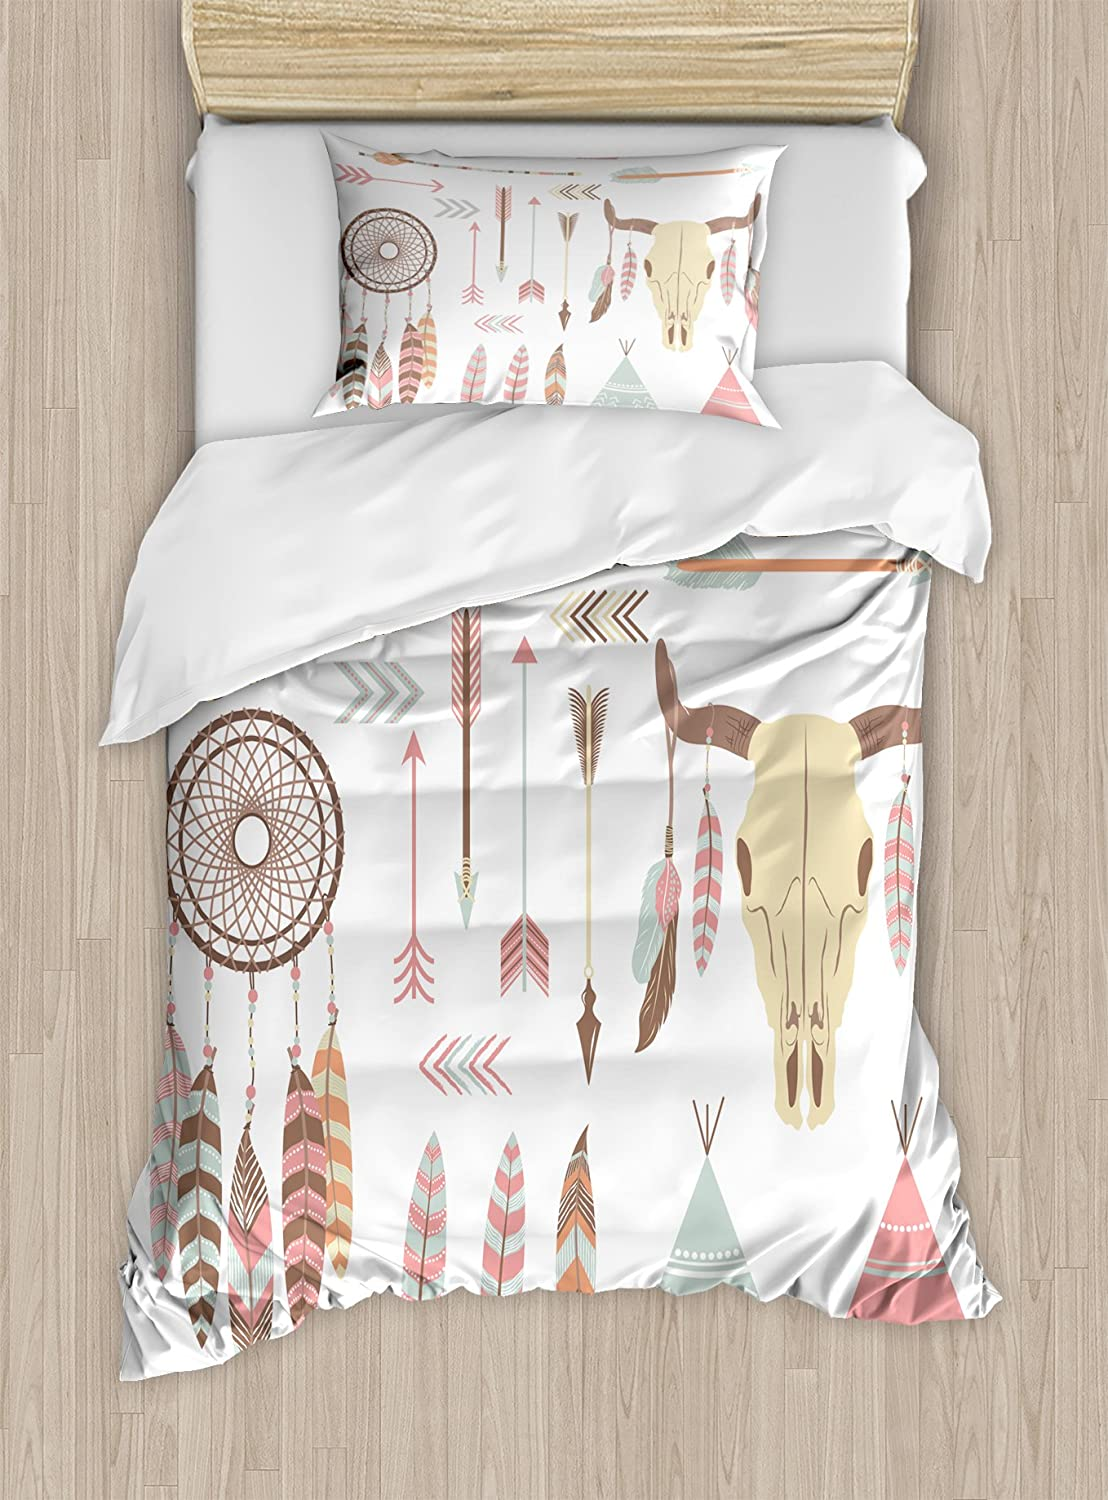 Ambesonne Feather Duvet Cover Set, Dreamcatcher Mountain Goat and Feathers with Arrows Image Print, Decorative 2 Piece Bedding Set with 1 Pillow Sham, Twin Size, Multicolor